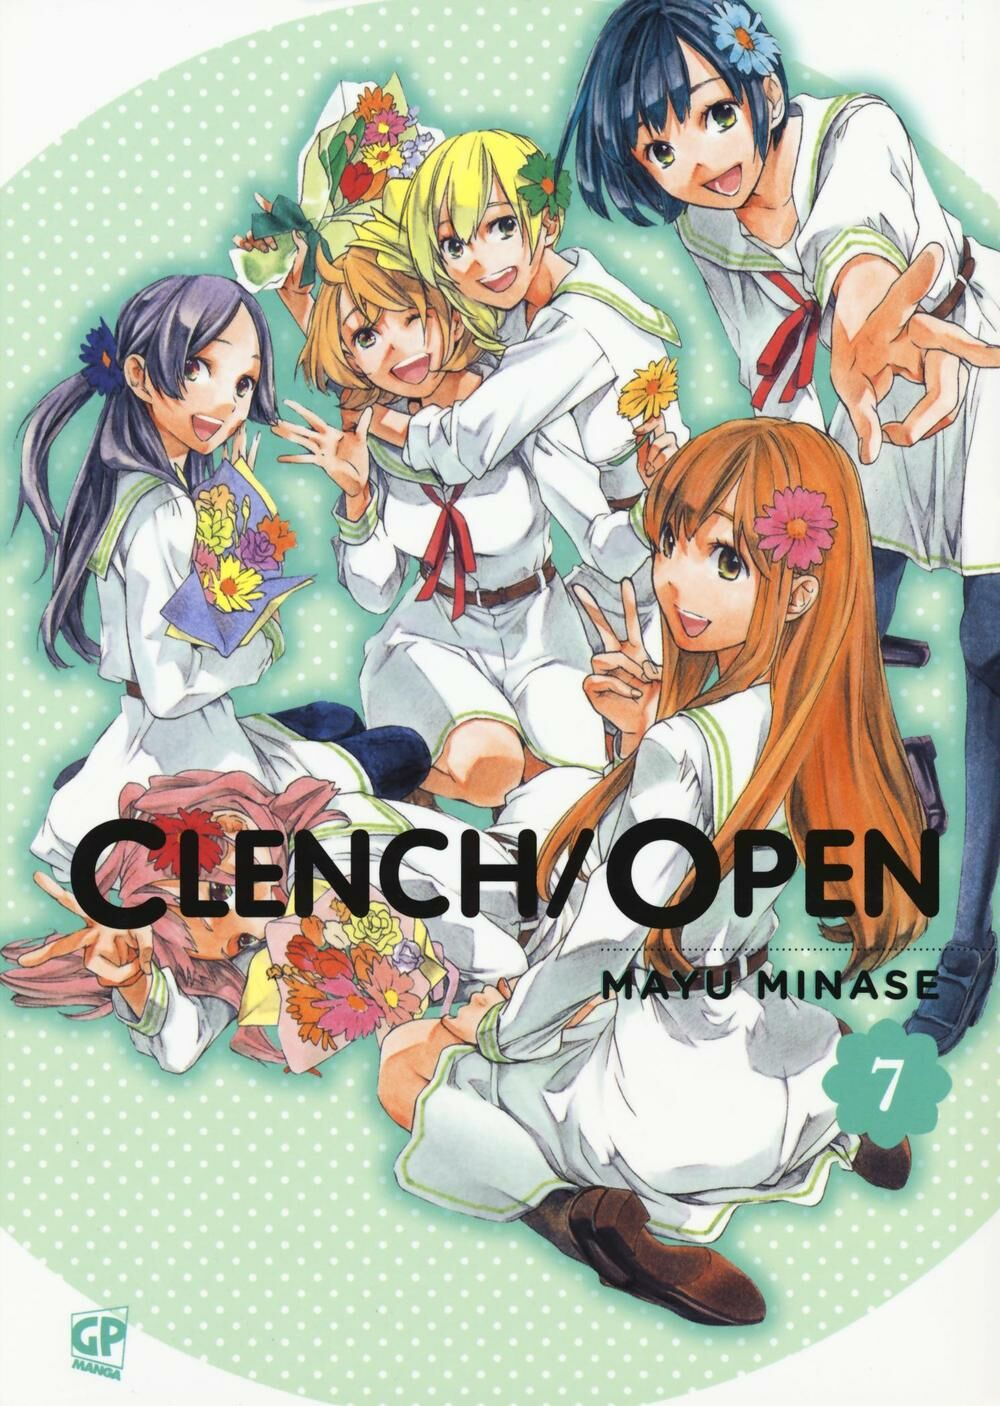 Clench open. Vol. 7